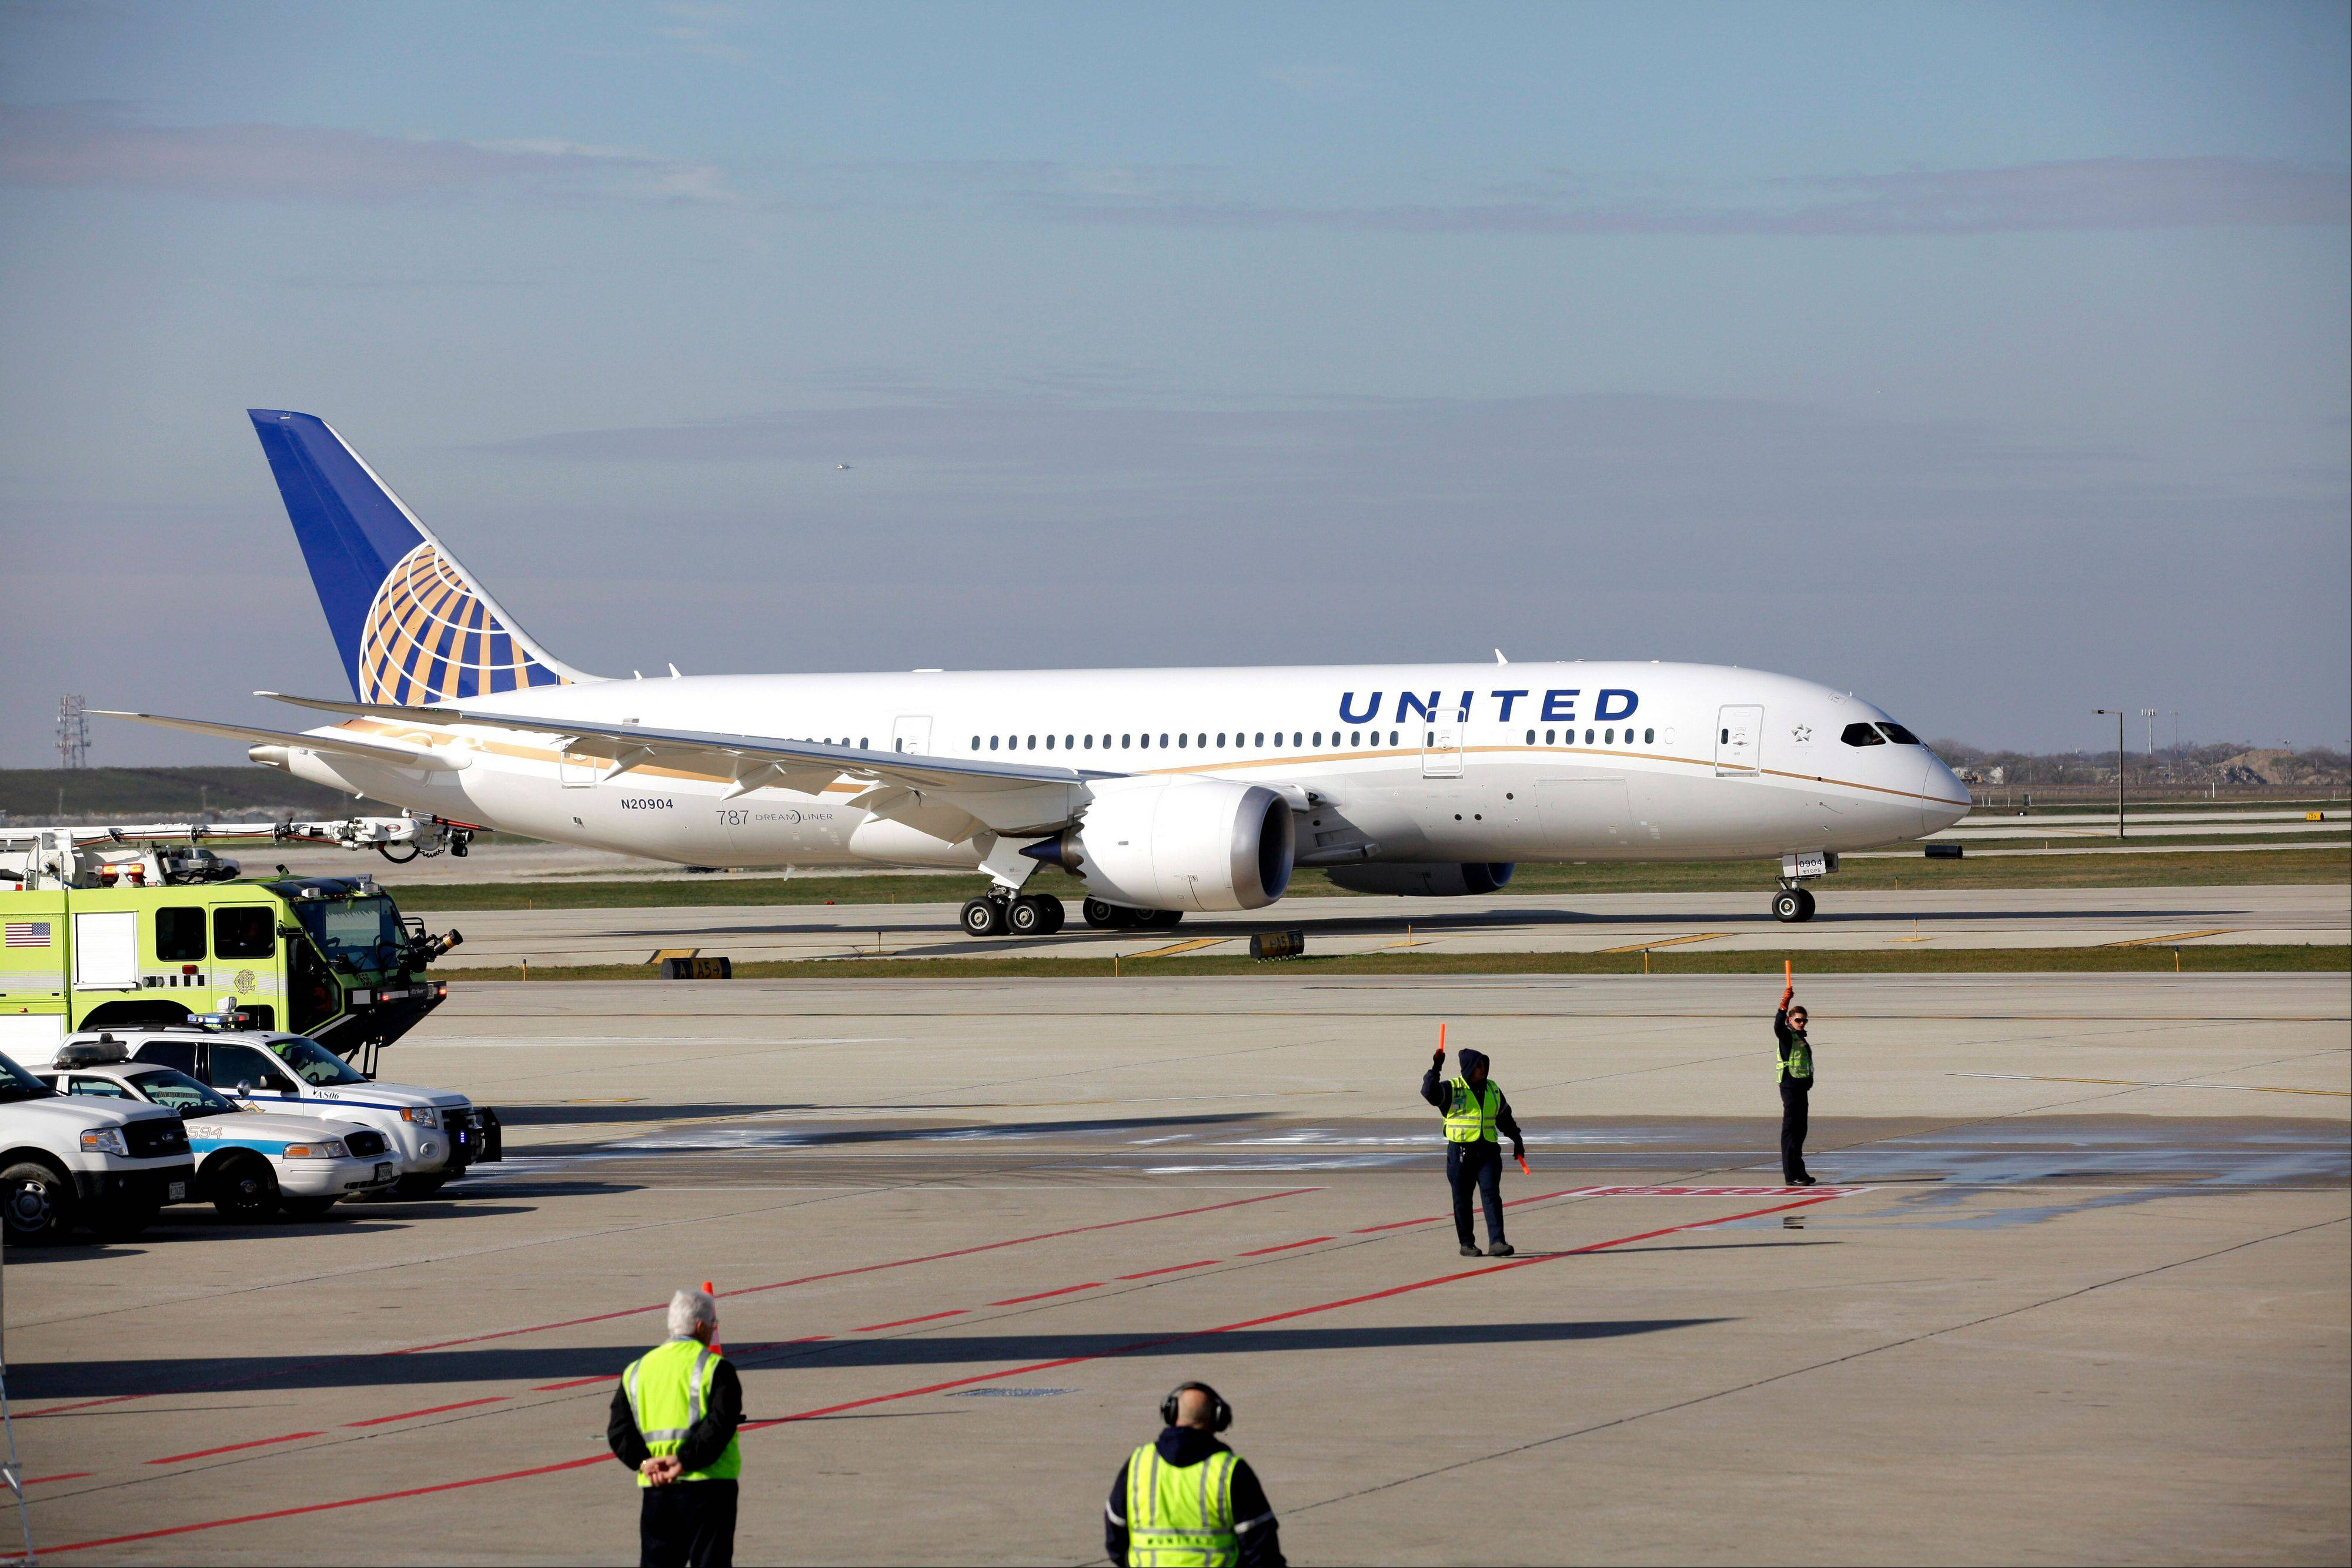 Chicago-based United Airlines is putting its grounded Boeing 787s back in the flight schedule, even though the plane is still grounded by government authorities.